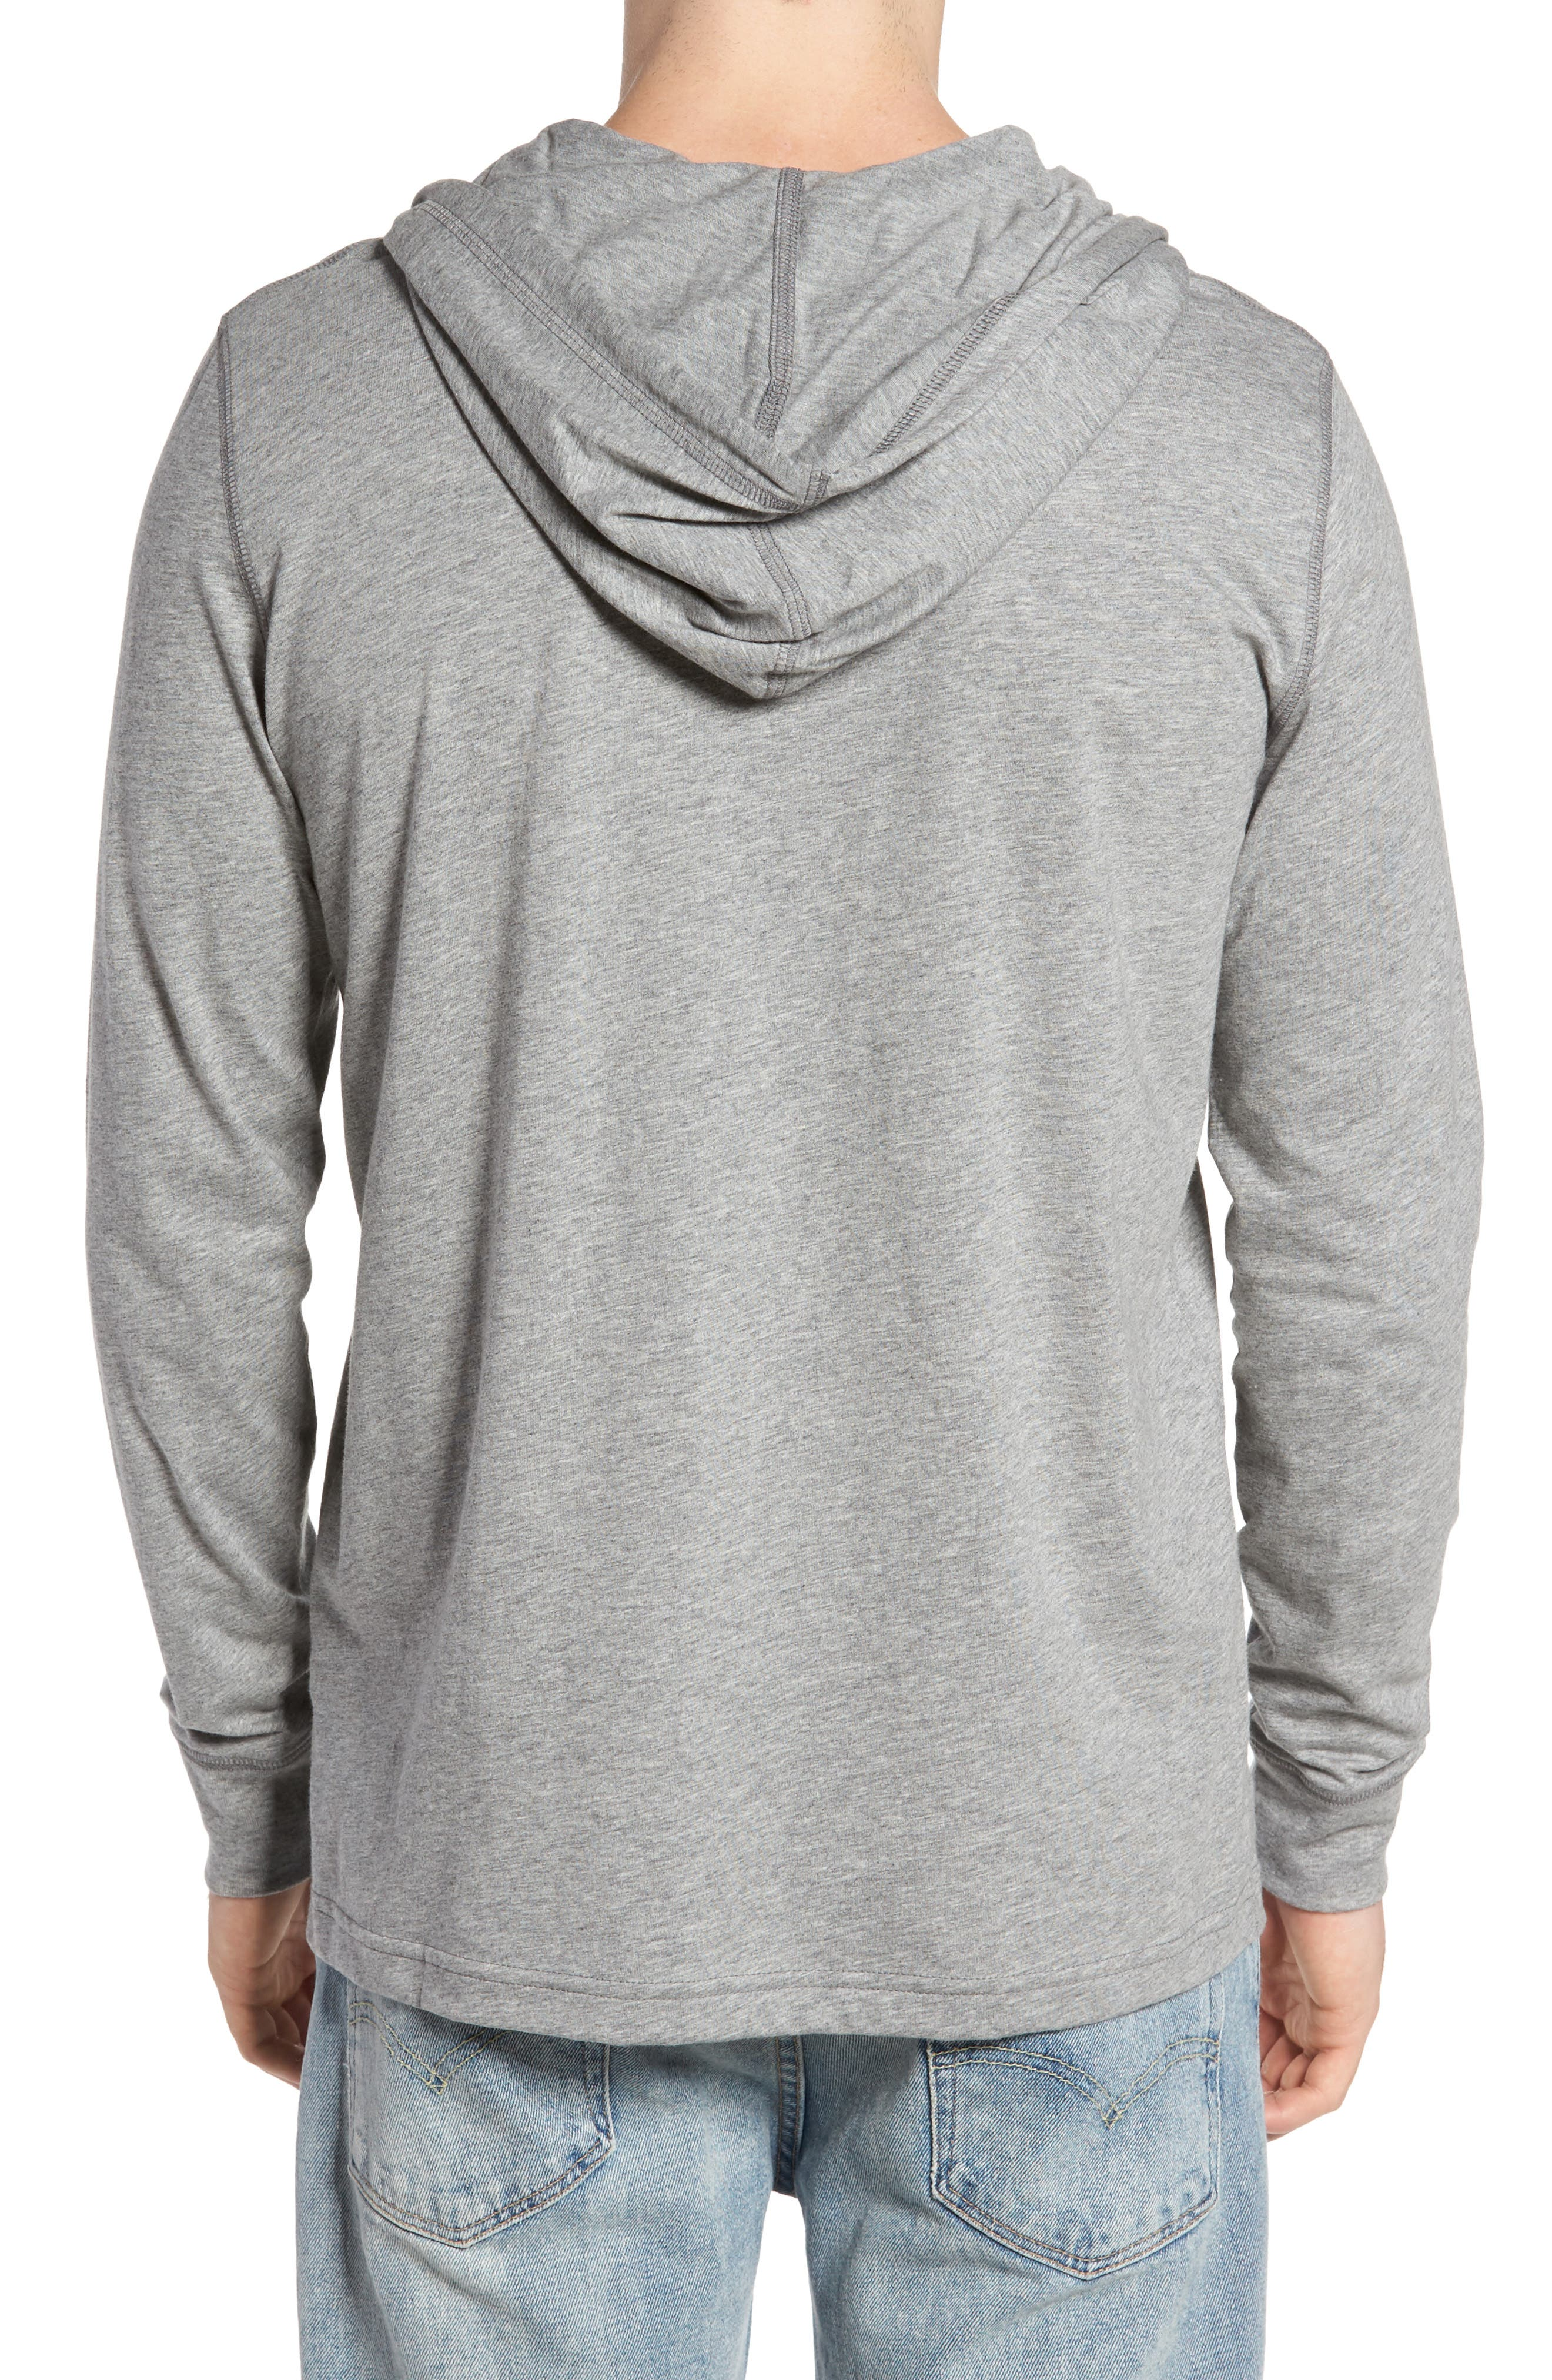 Delano Henley Hoodie,                             Alternate thumbnail 2, color,                             Heather Grey